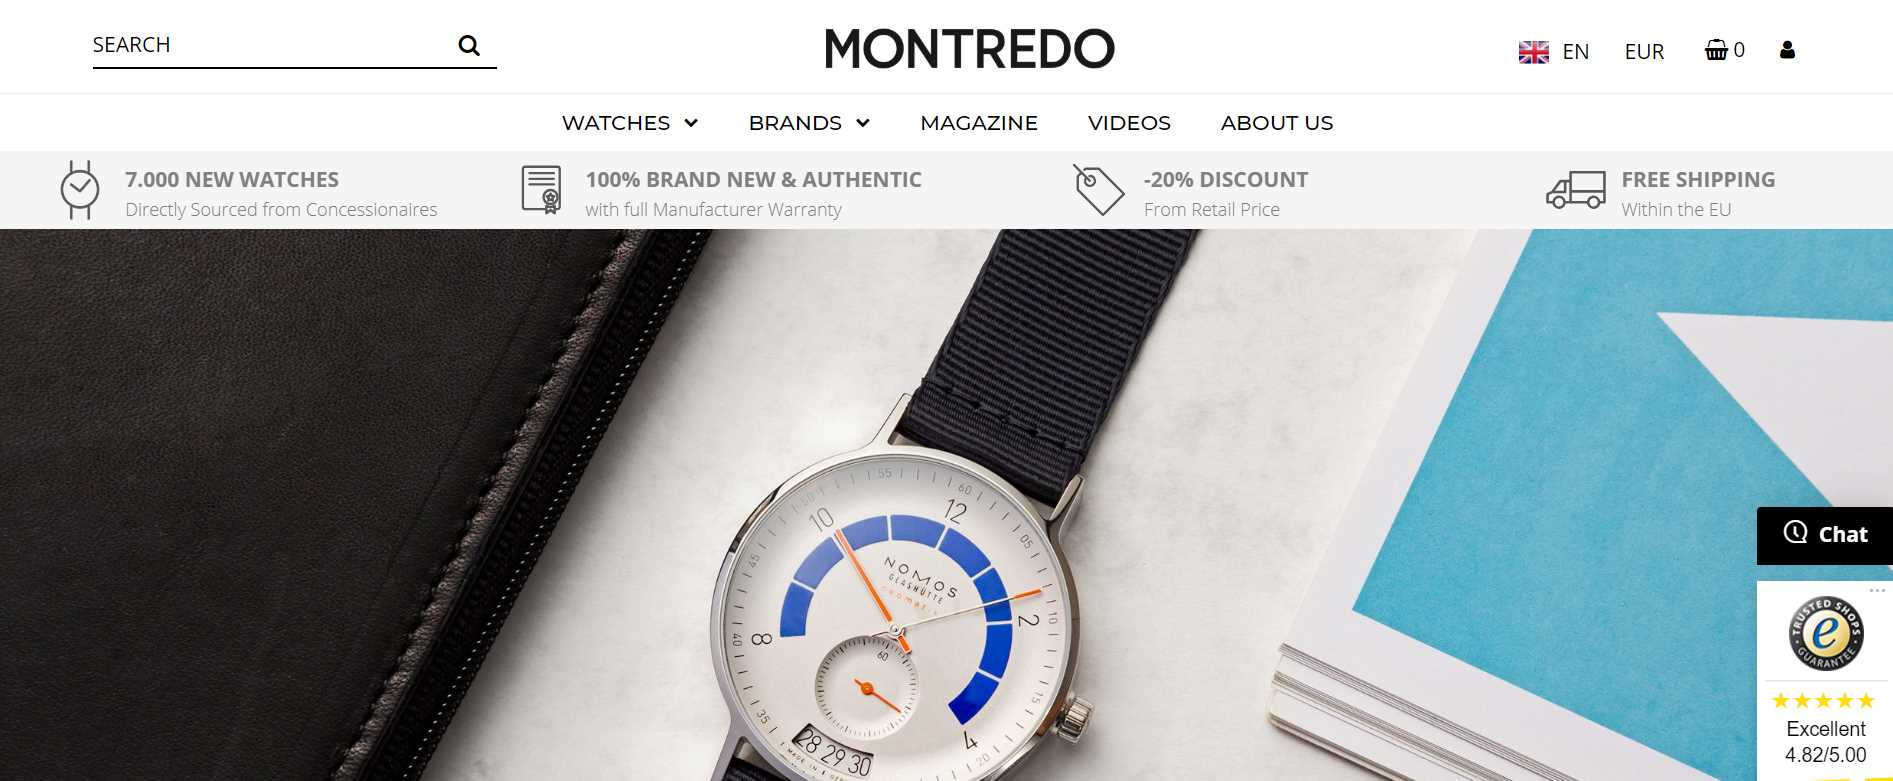 montredo luxury watches online